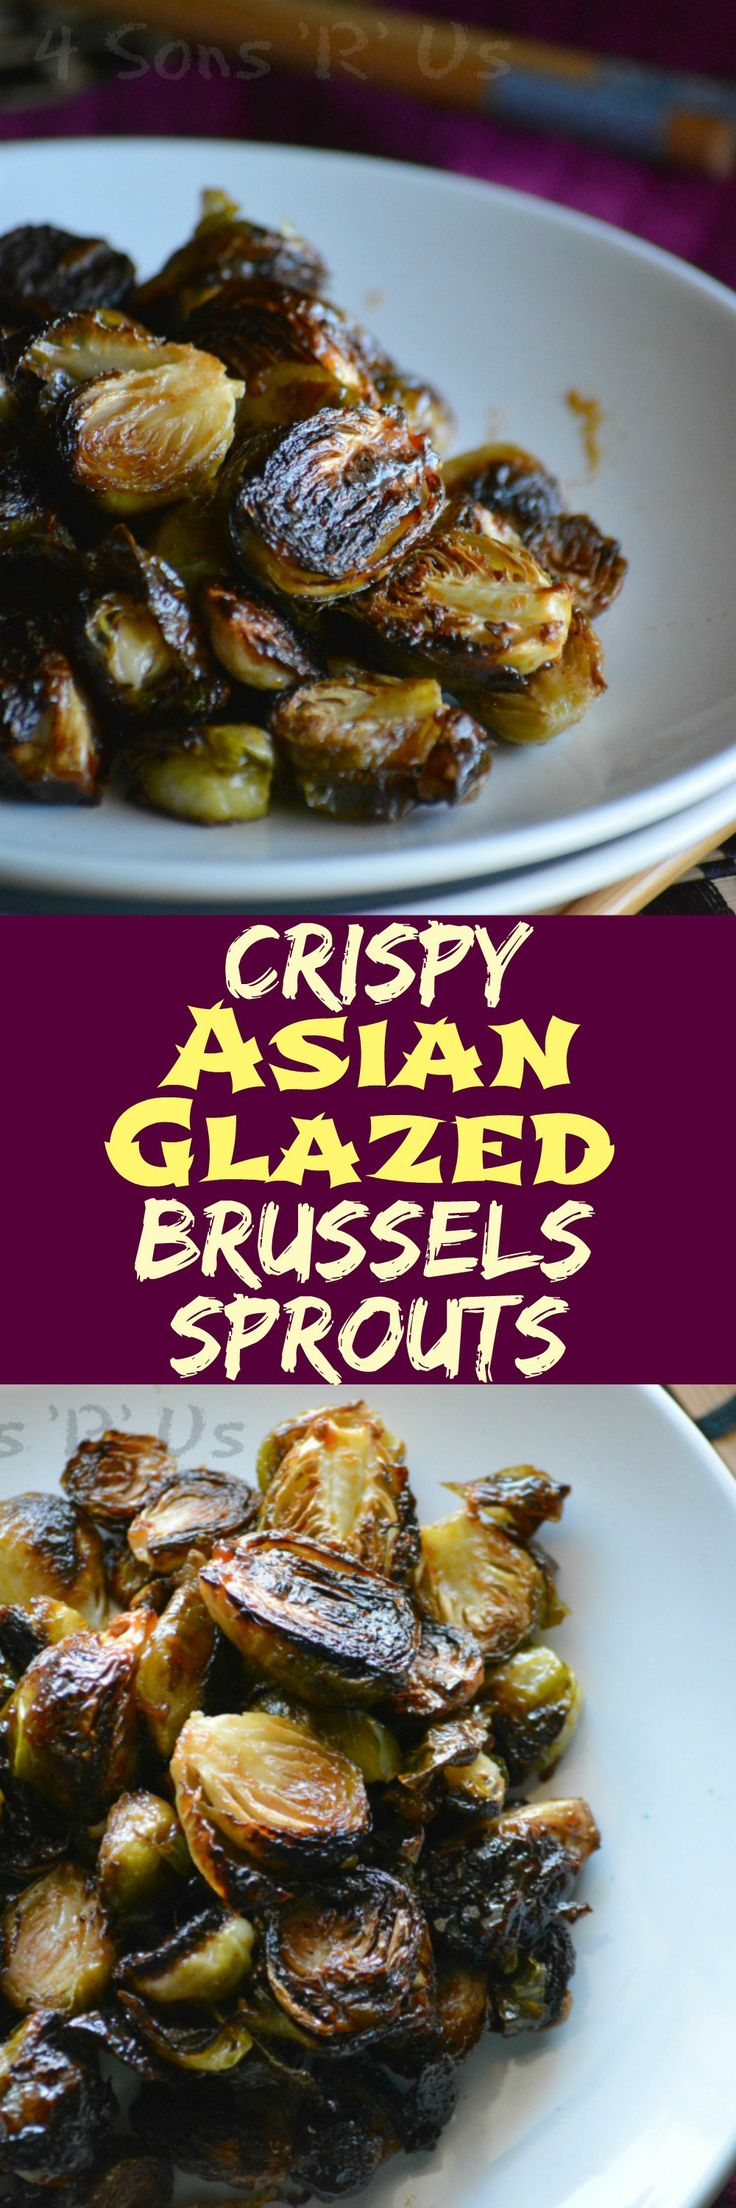 A new take on Grandma's favorite vegetable-- these crispy, caramelized Asian Glazed Brussels Sprouts are tossed in a sweet and spicy Asian style glaze for a yummy side dish that's like crispy green crack. Seriously, each one is a love note to your taste buds.